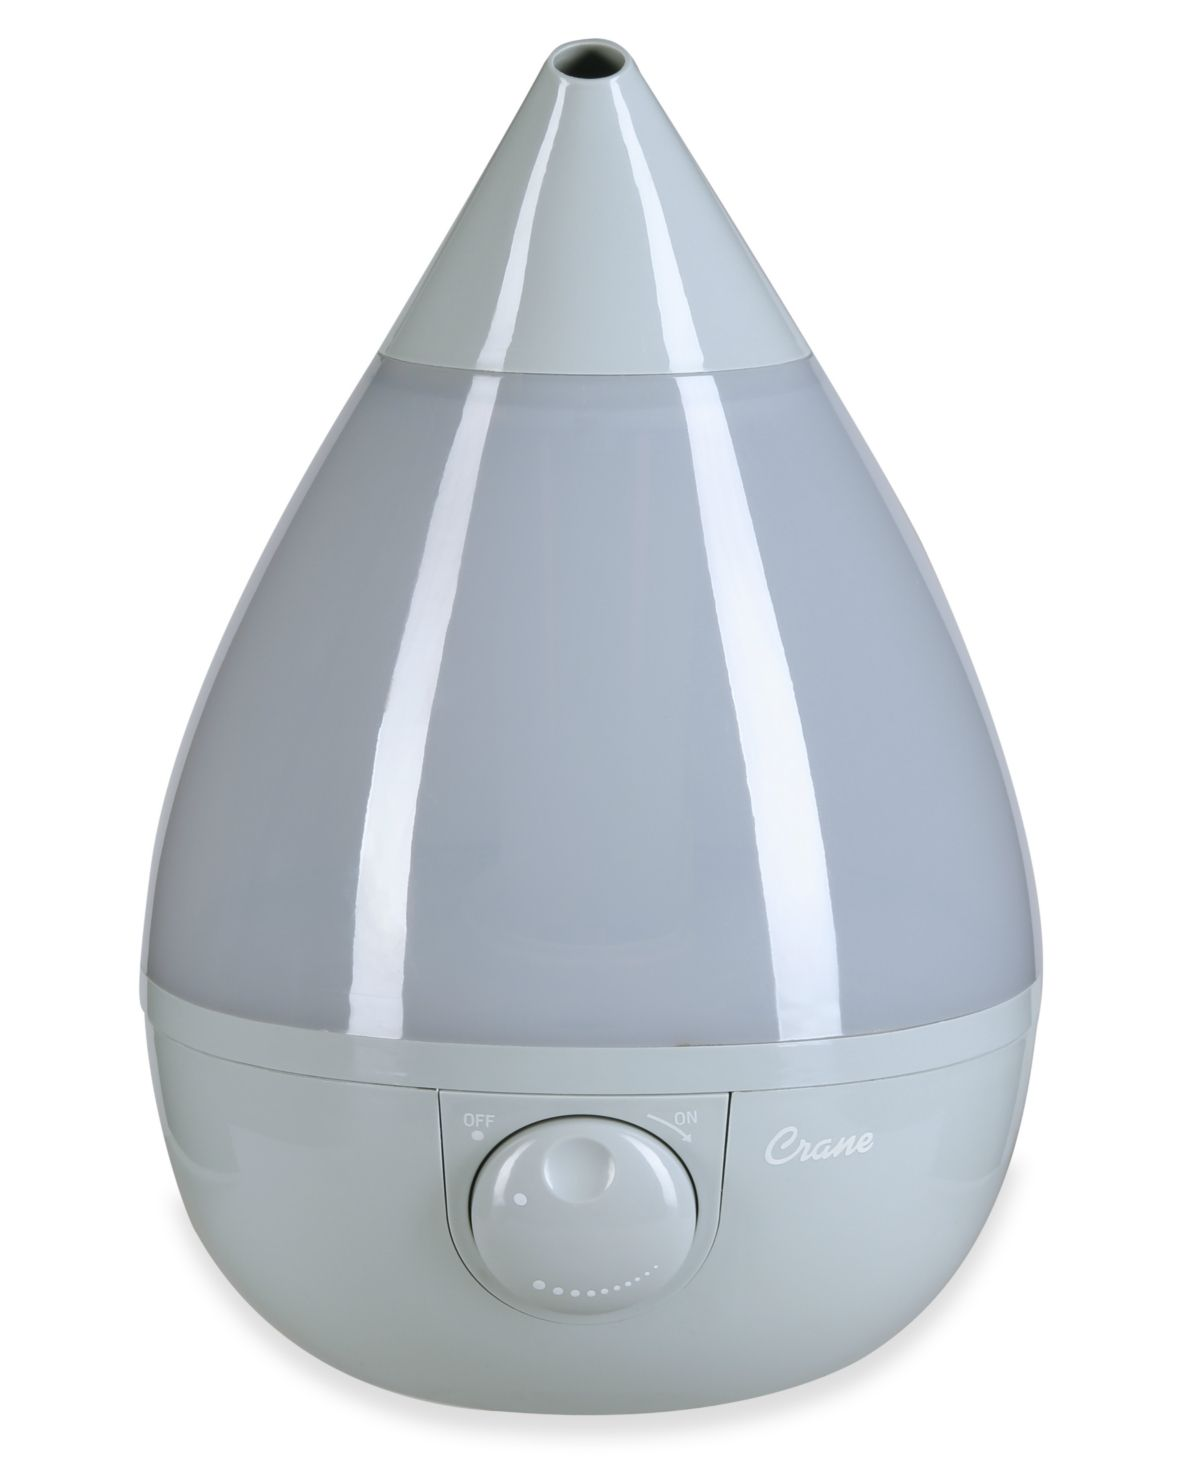 Crane Portable Ultrasonic Humidifier